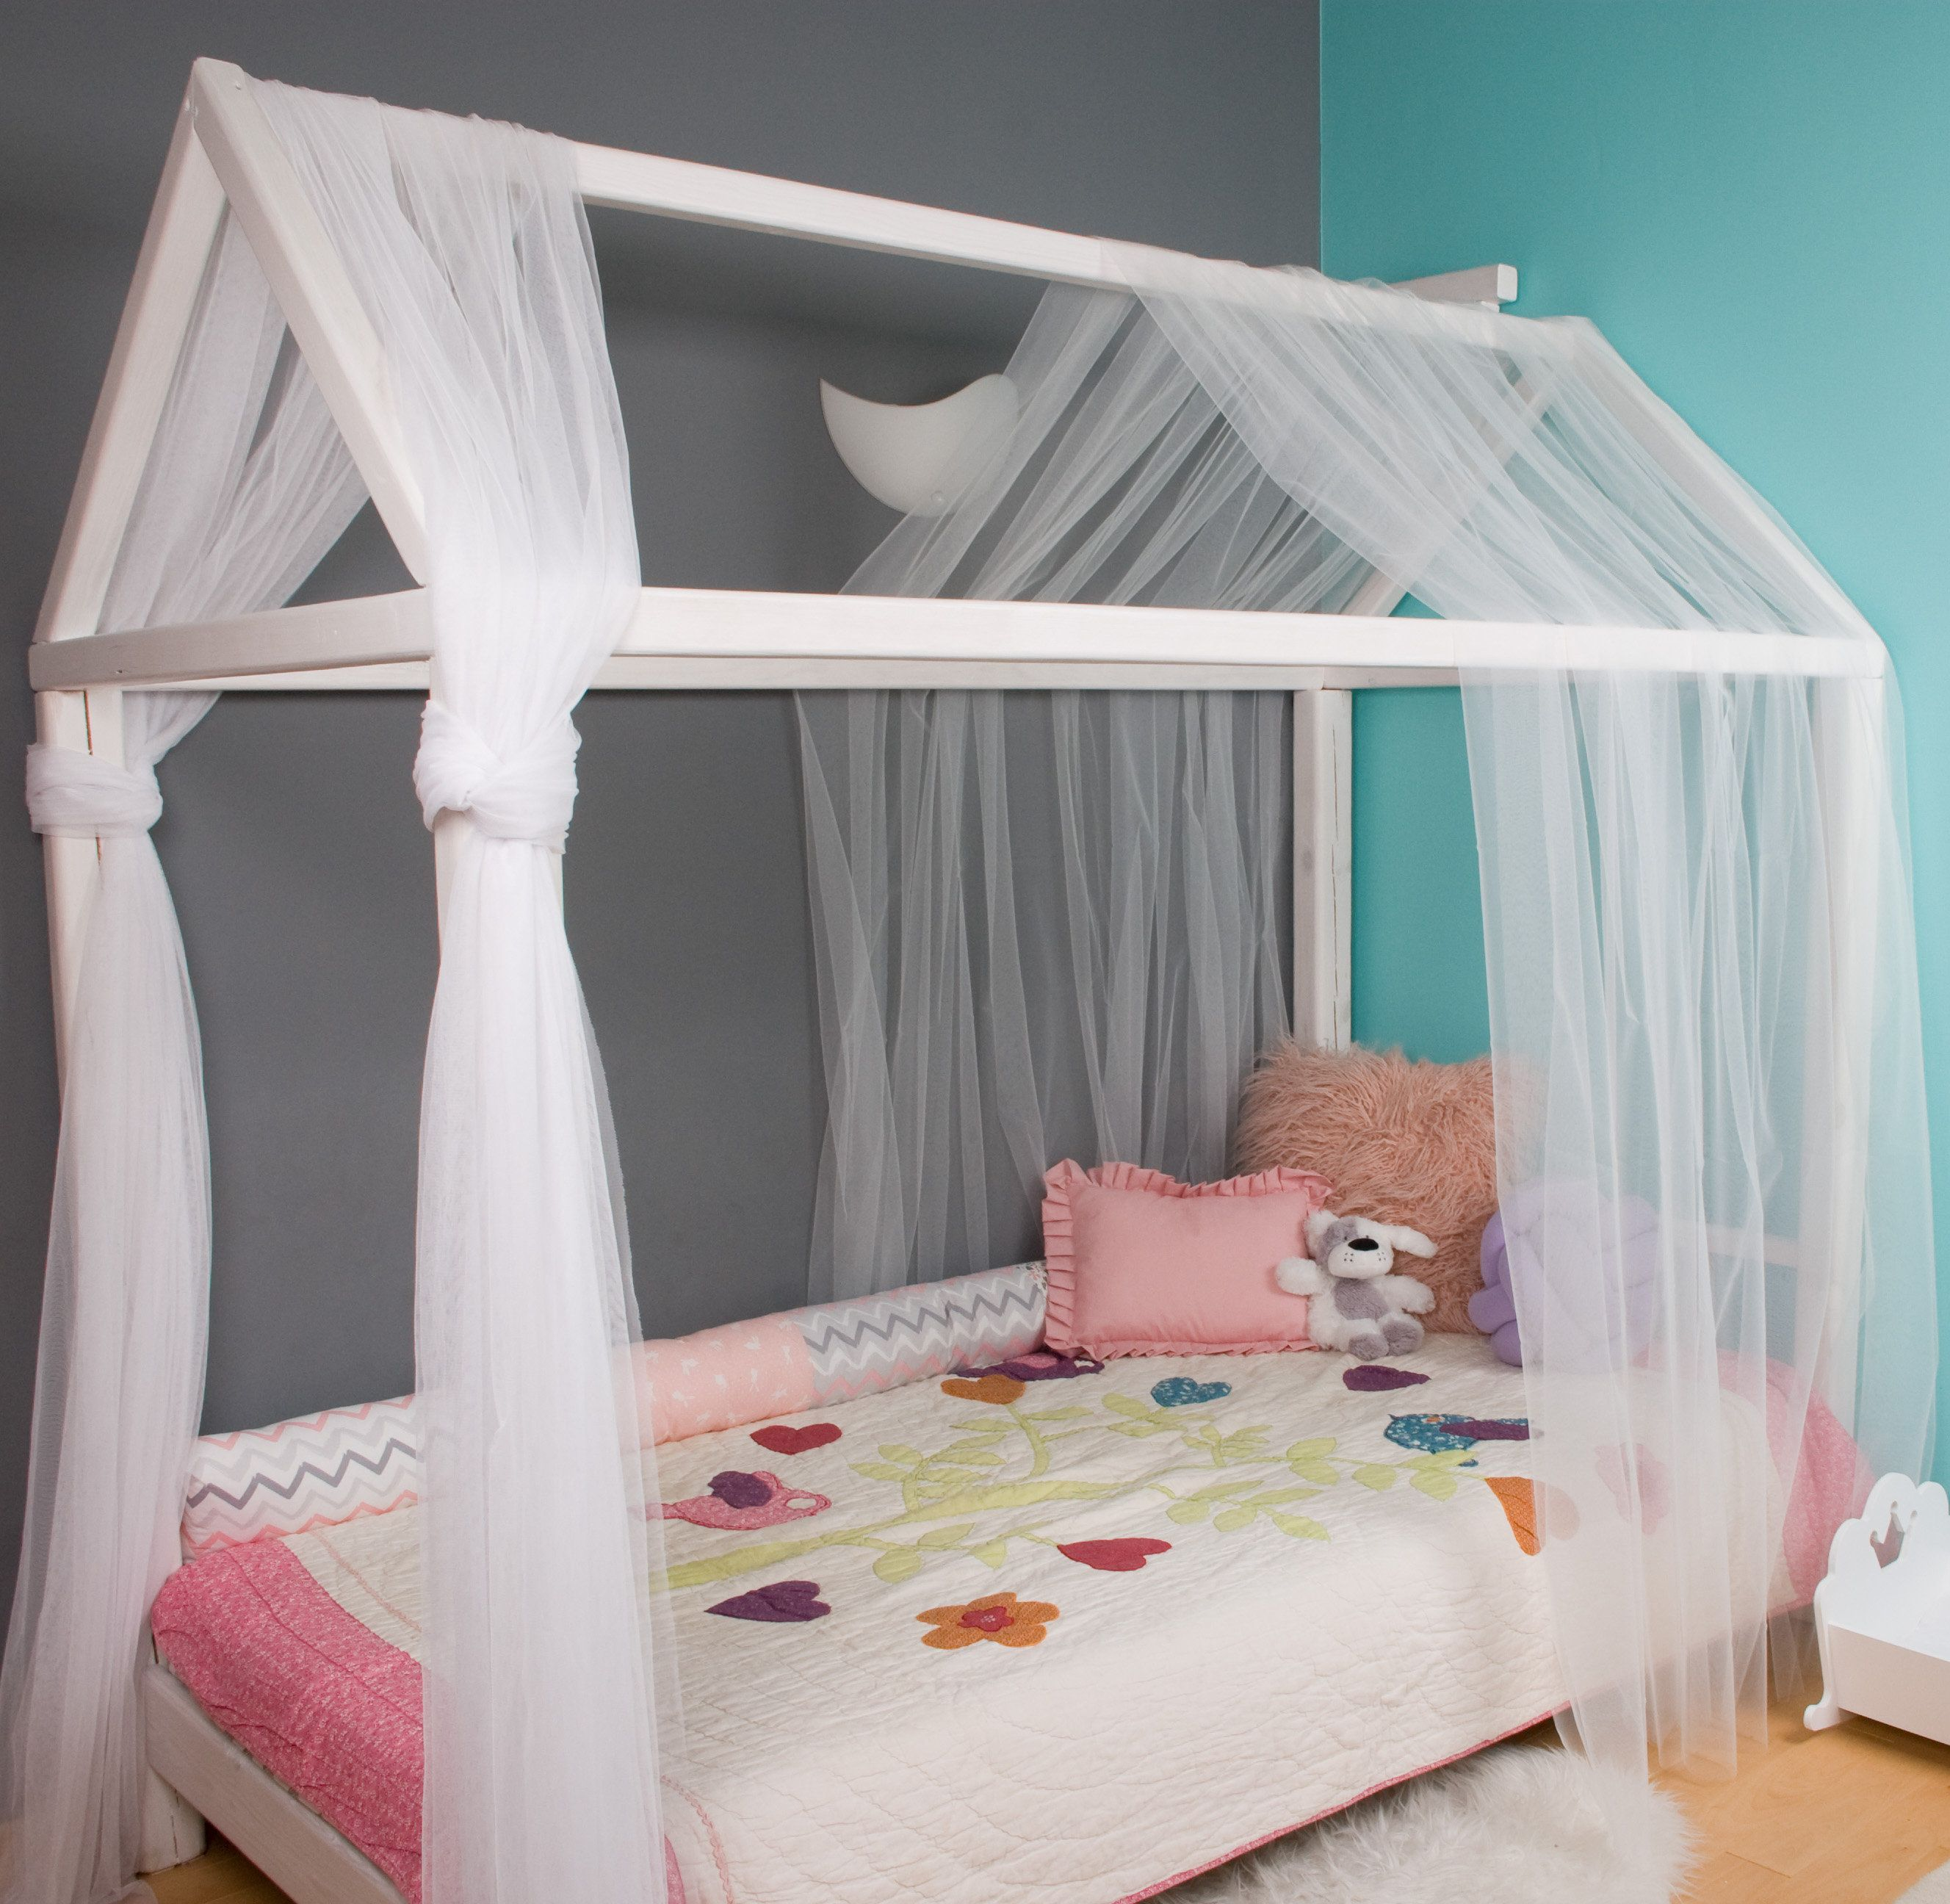 Montessori House Bed Canopy Baldachin Bed Canopy Play Floor Etsy House Beds Kids Bedroom Inspiration Toddler Floor Bed